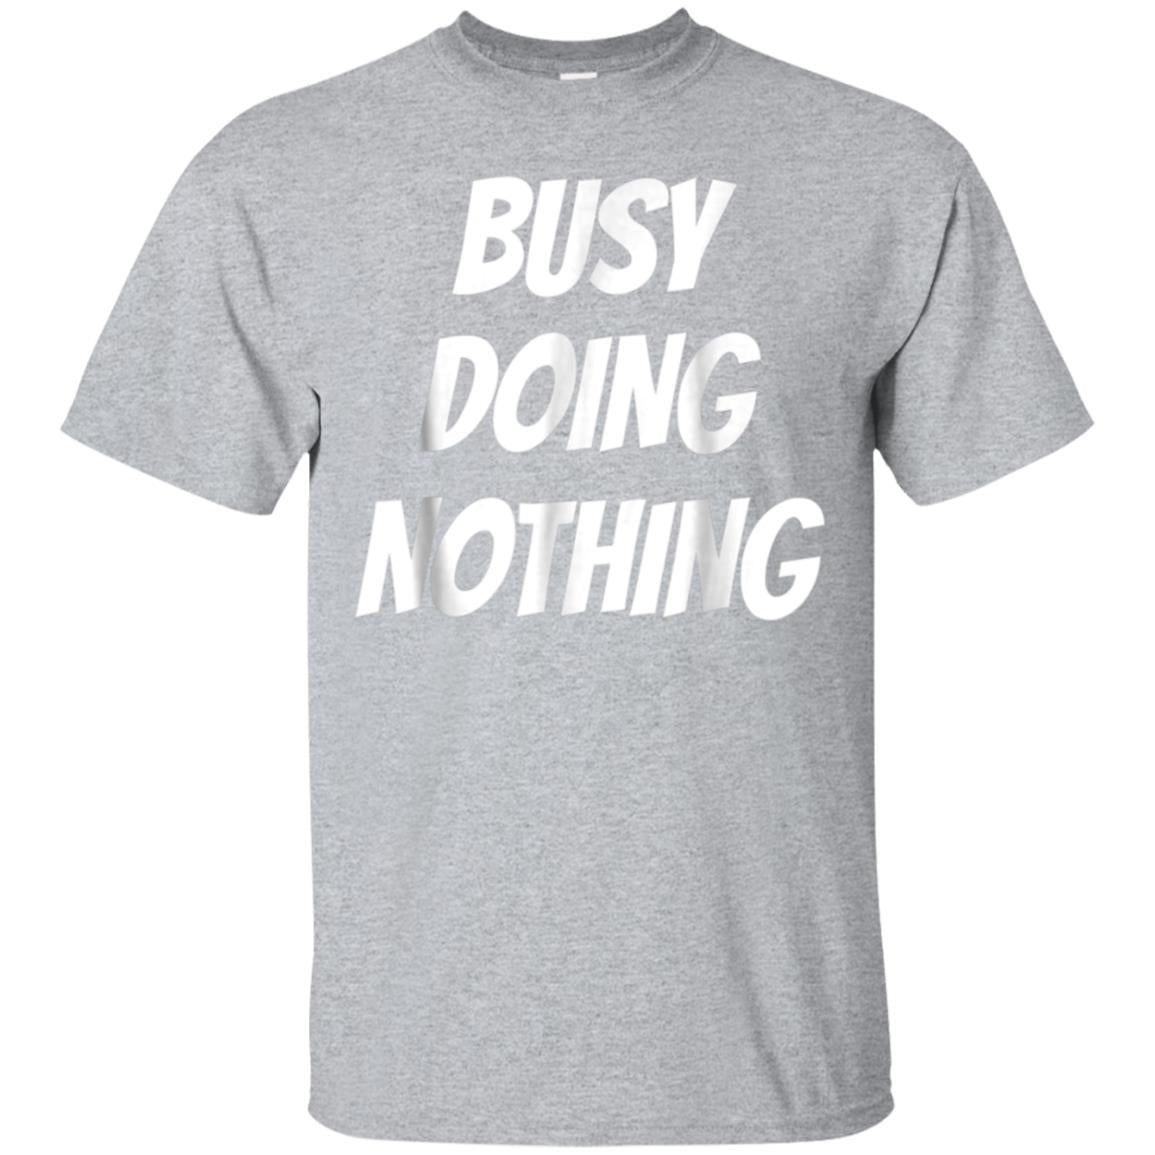 BUSY DOING NOTHING Funny Retirement Party Retired T-Shirt 99promocode